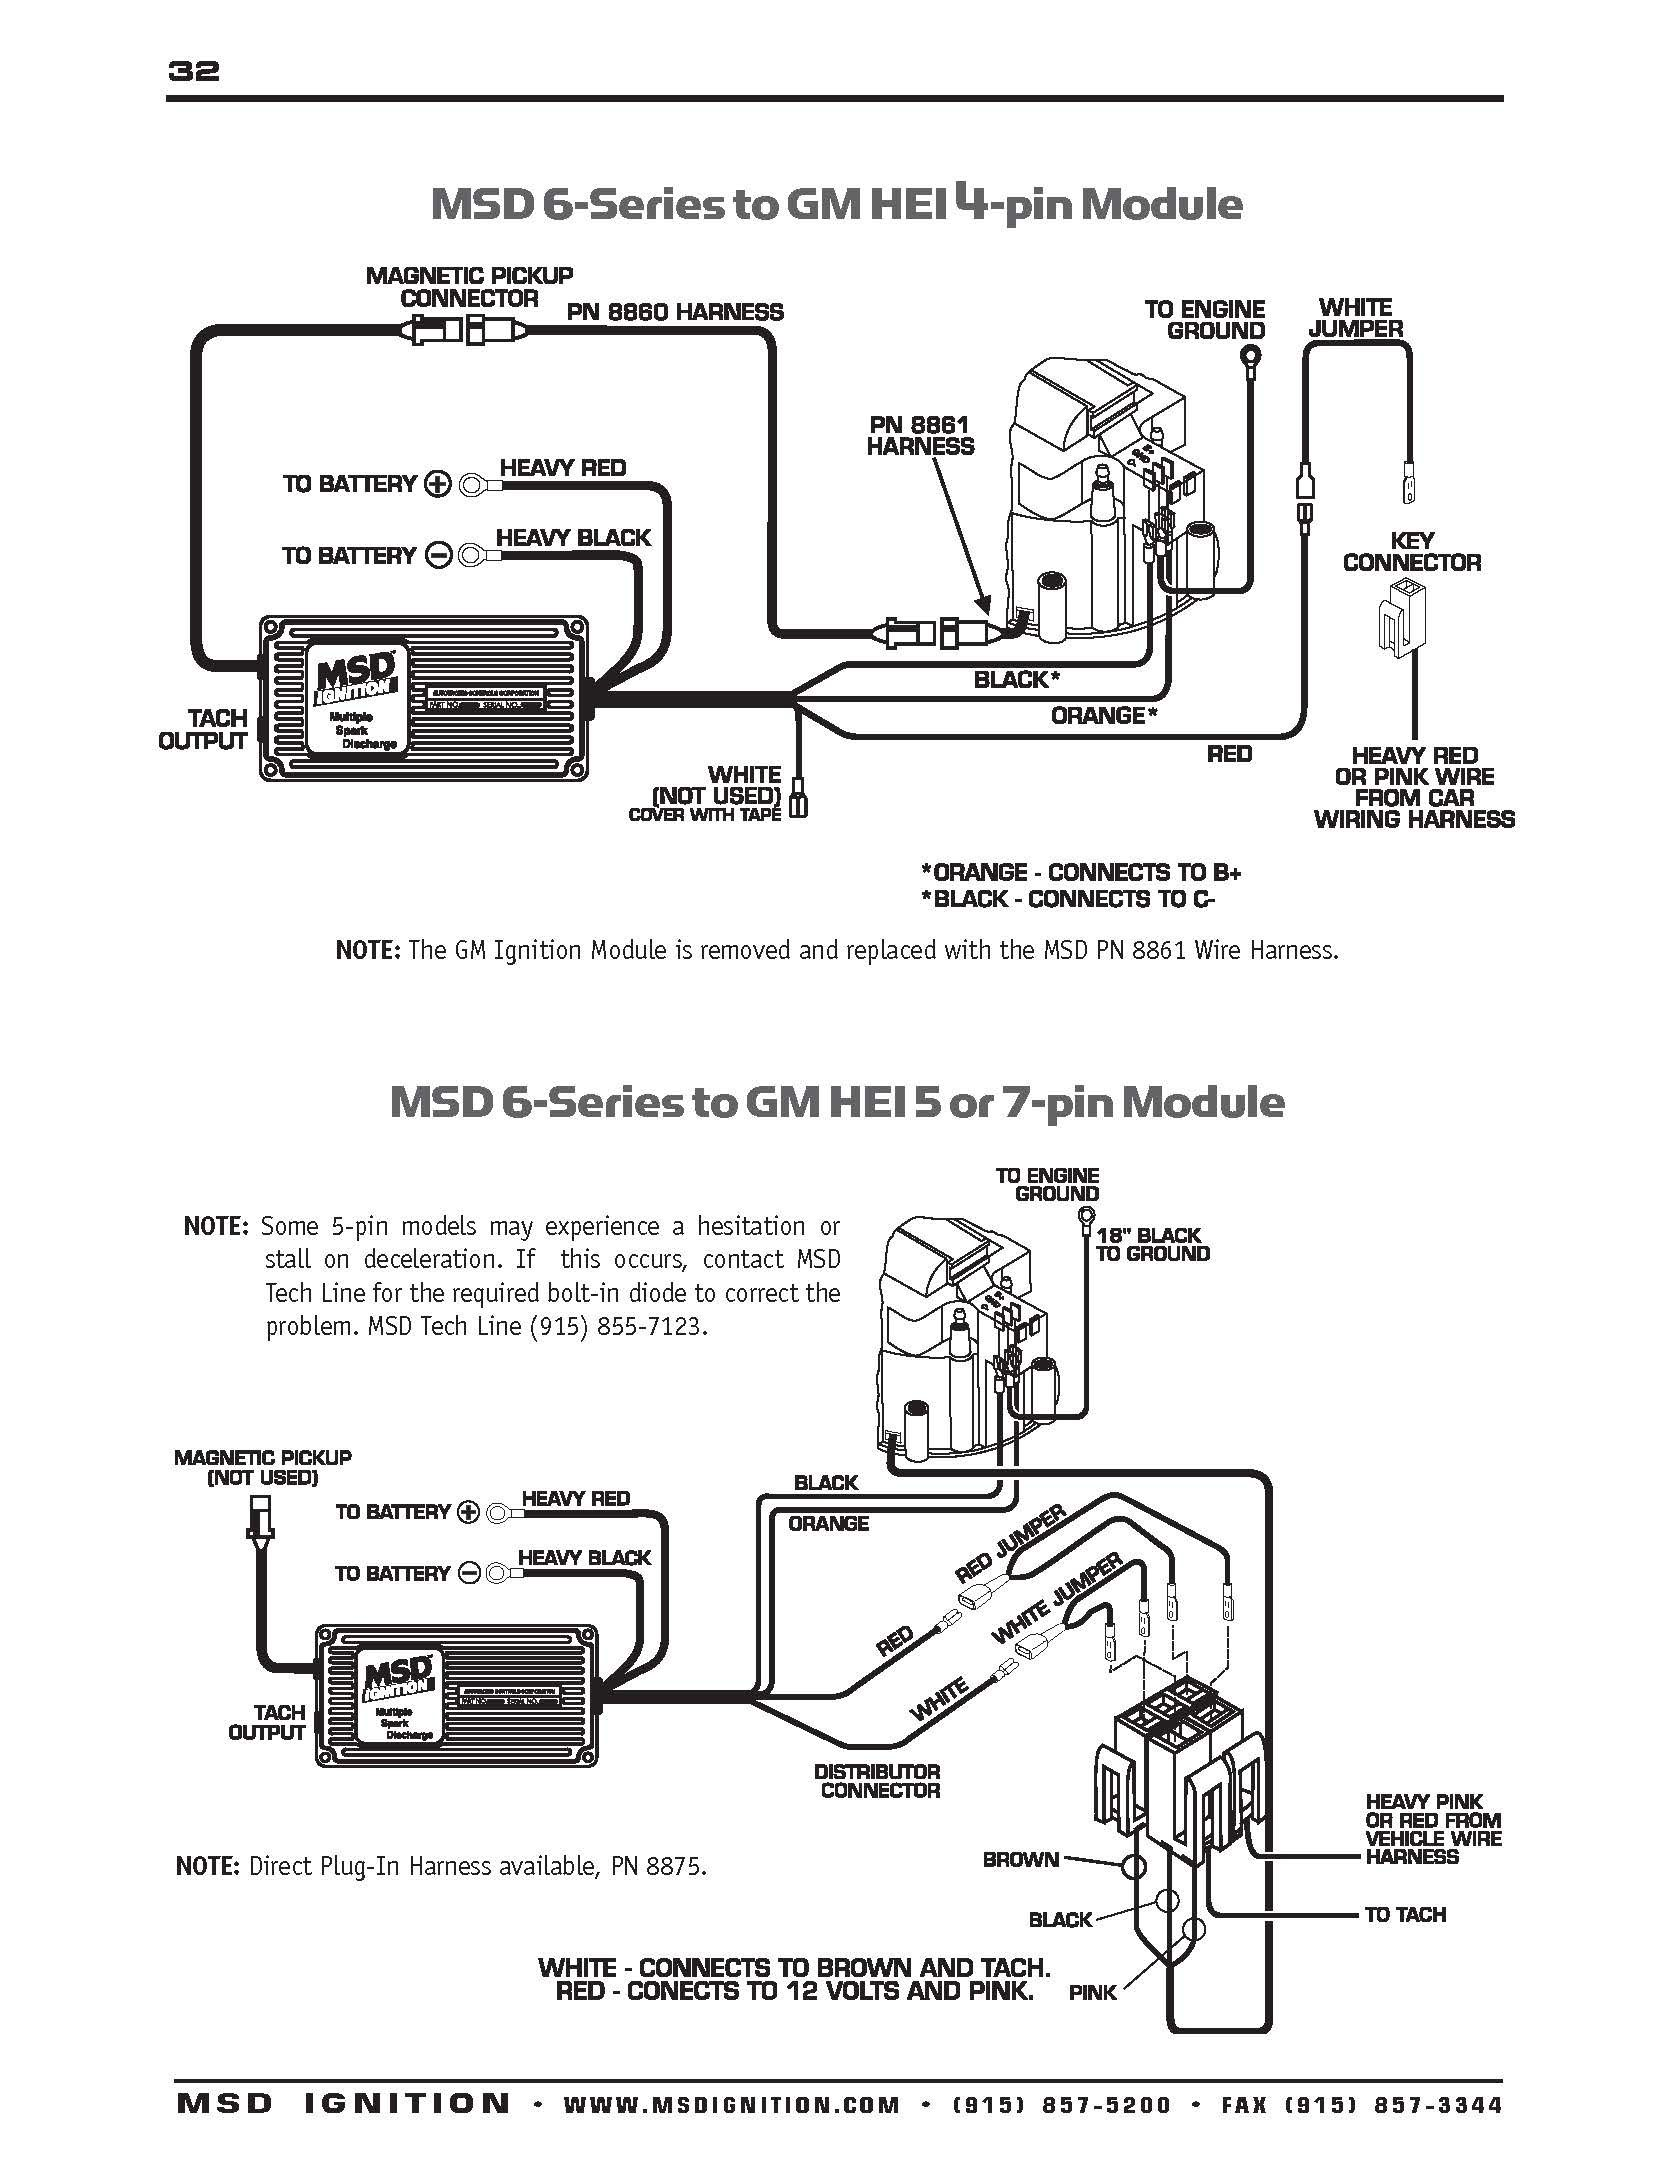 msd ignition wiring diagrams 1966 chevelle cars chevy wire msd 7al 2 wiring diagram msd ignition wiring diagram vw [ 1675 x 2175 Pixel ]